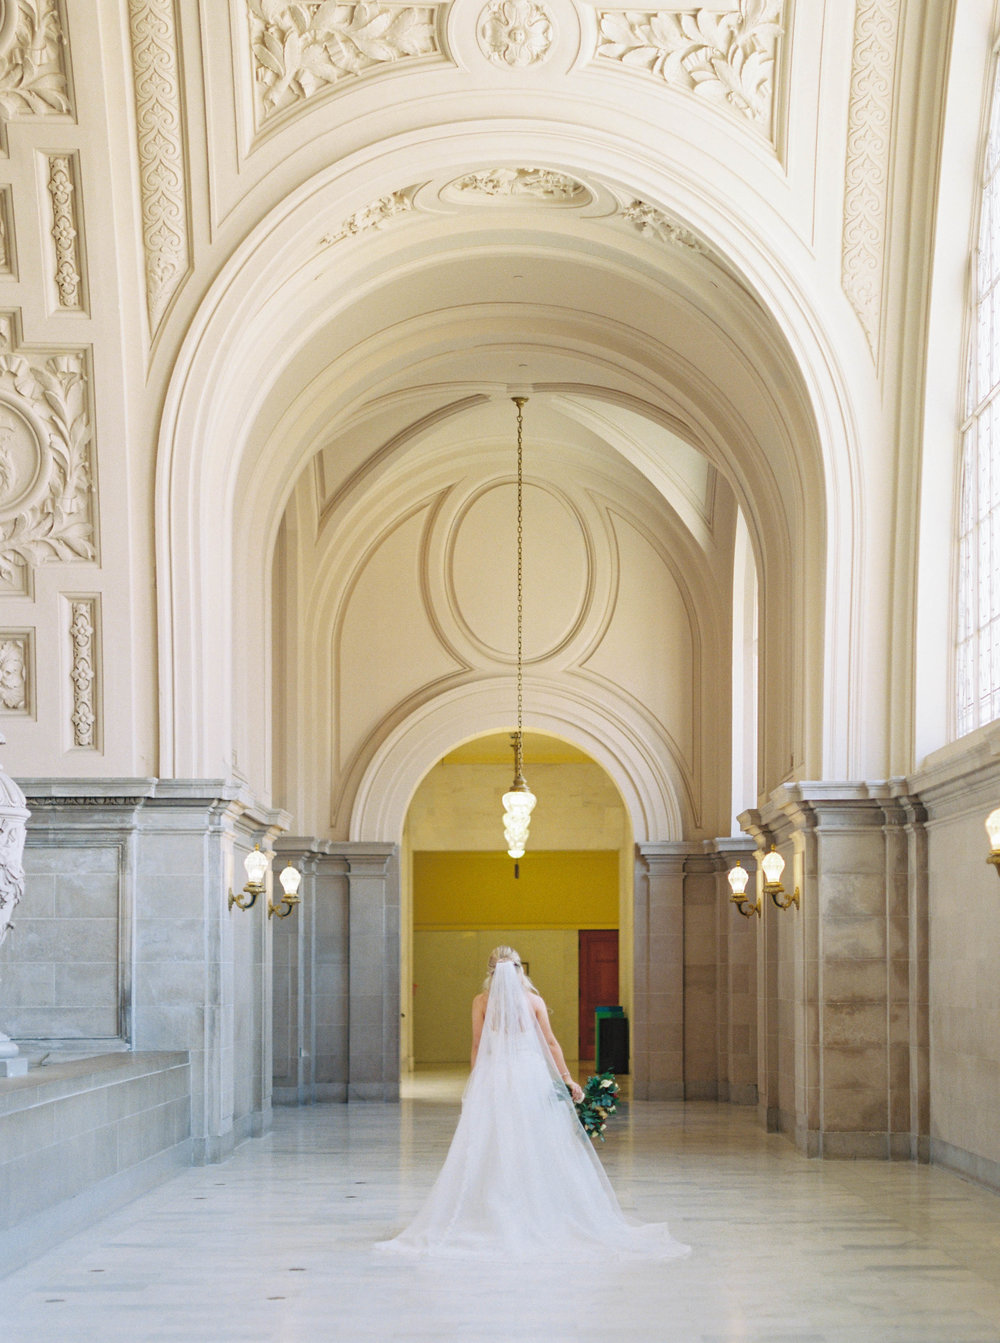 DennisRoyCoronel_Photography_SanFranciscoCityHall_Wedding-22.jpg